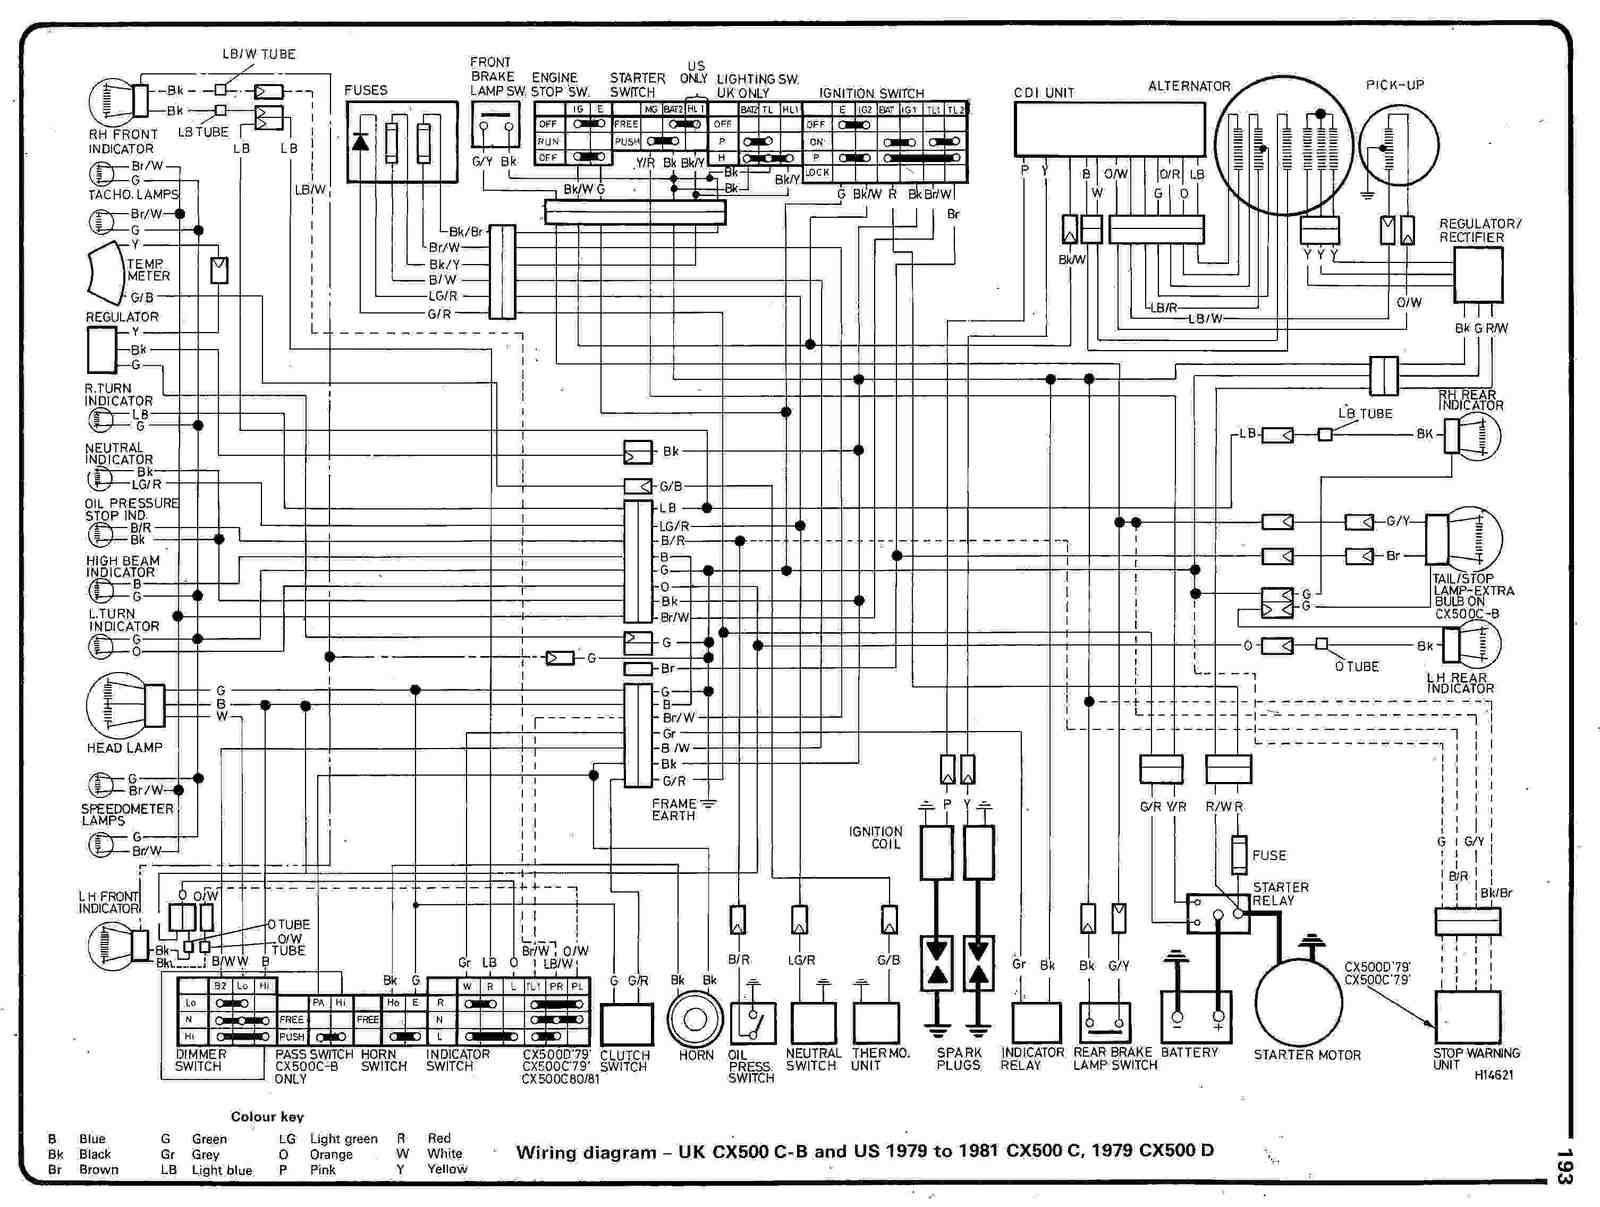 Honda Wiring Diagram Honda Atv Wiring Diagram Honda Wiring Diagrams